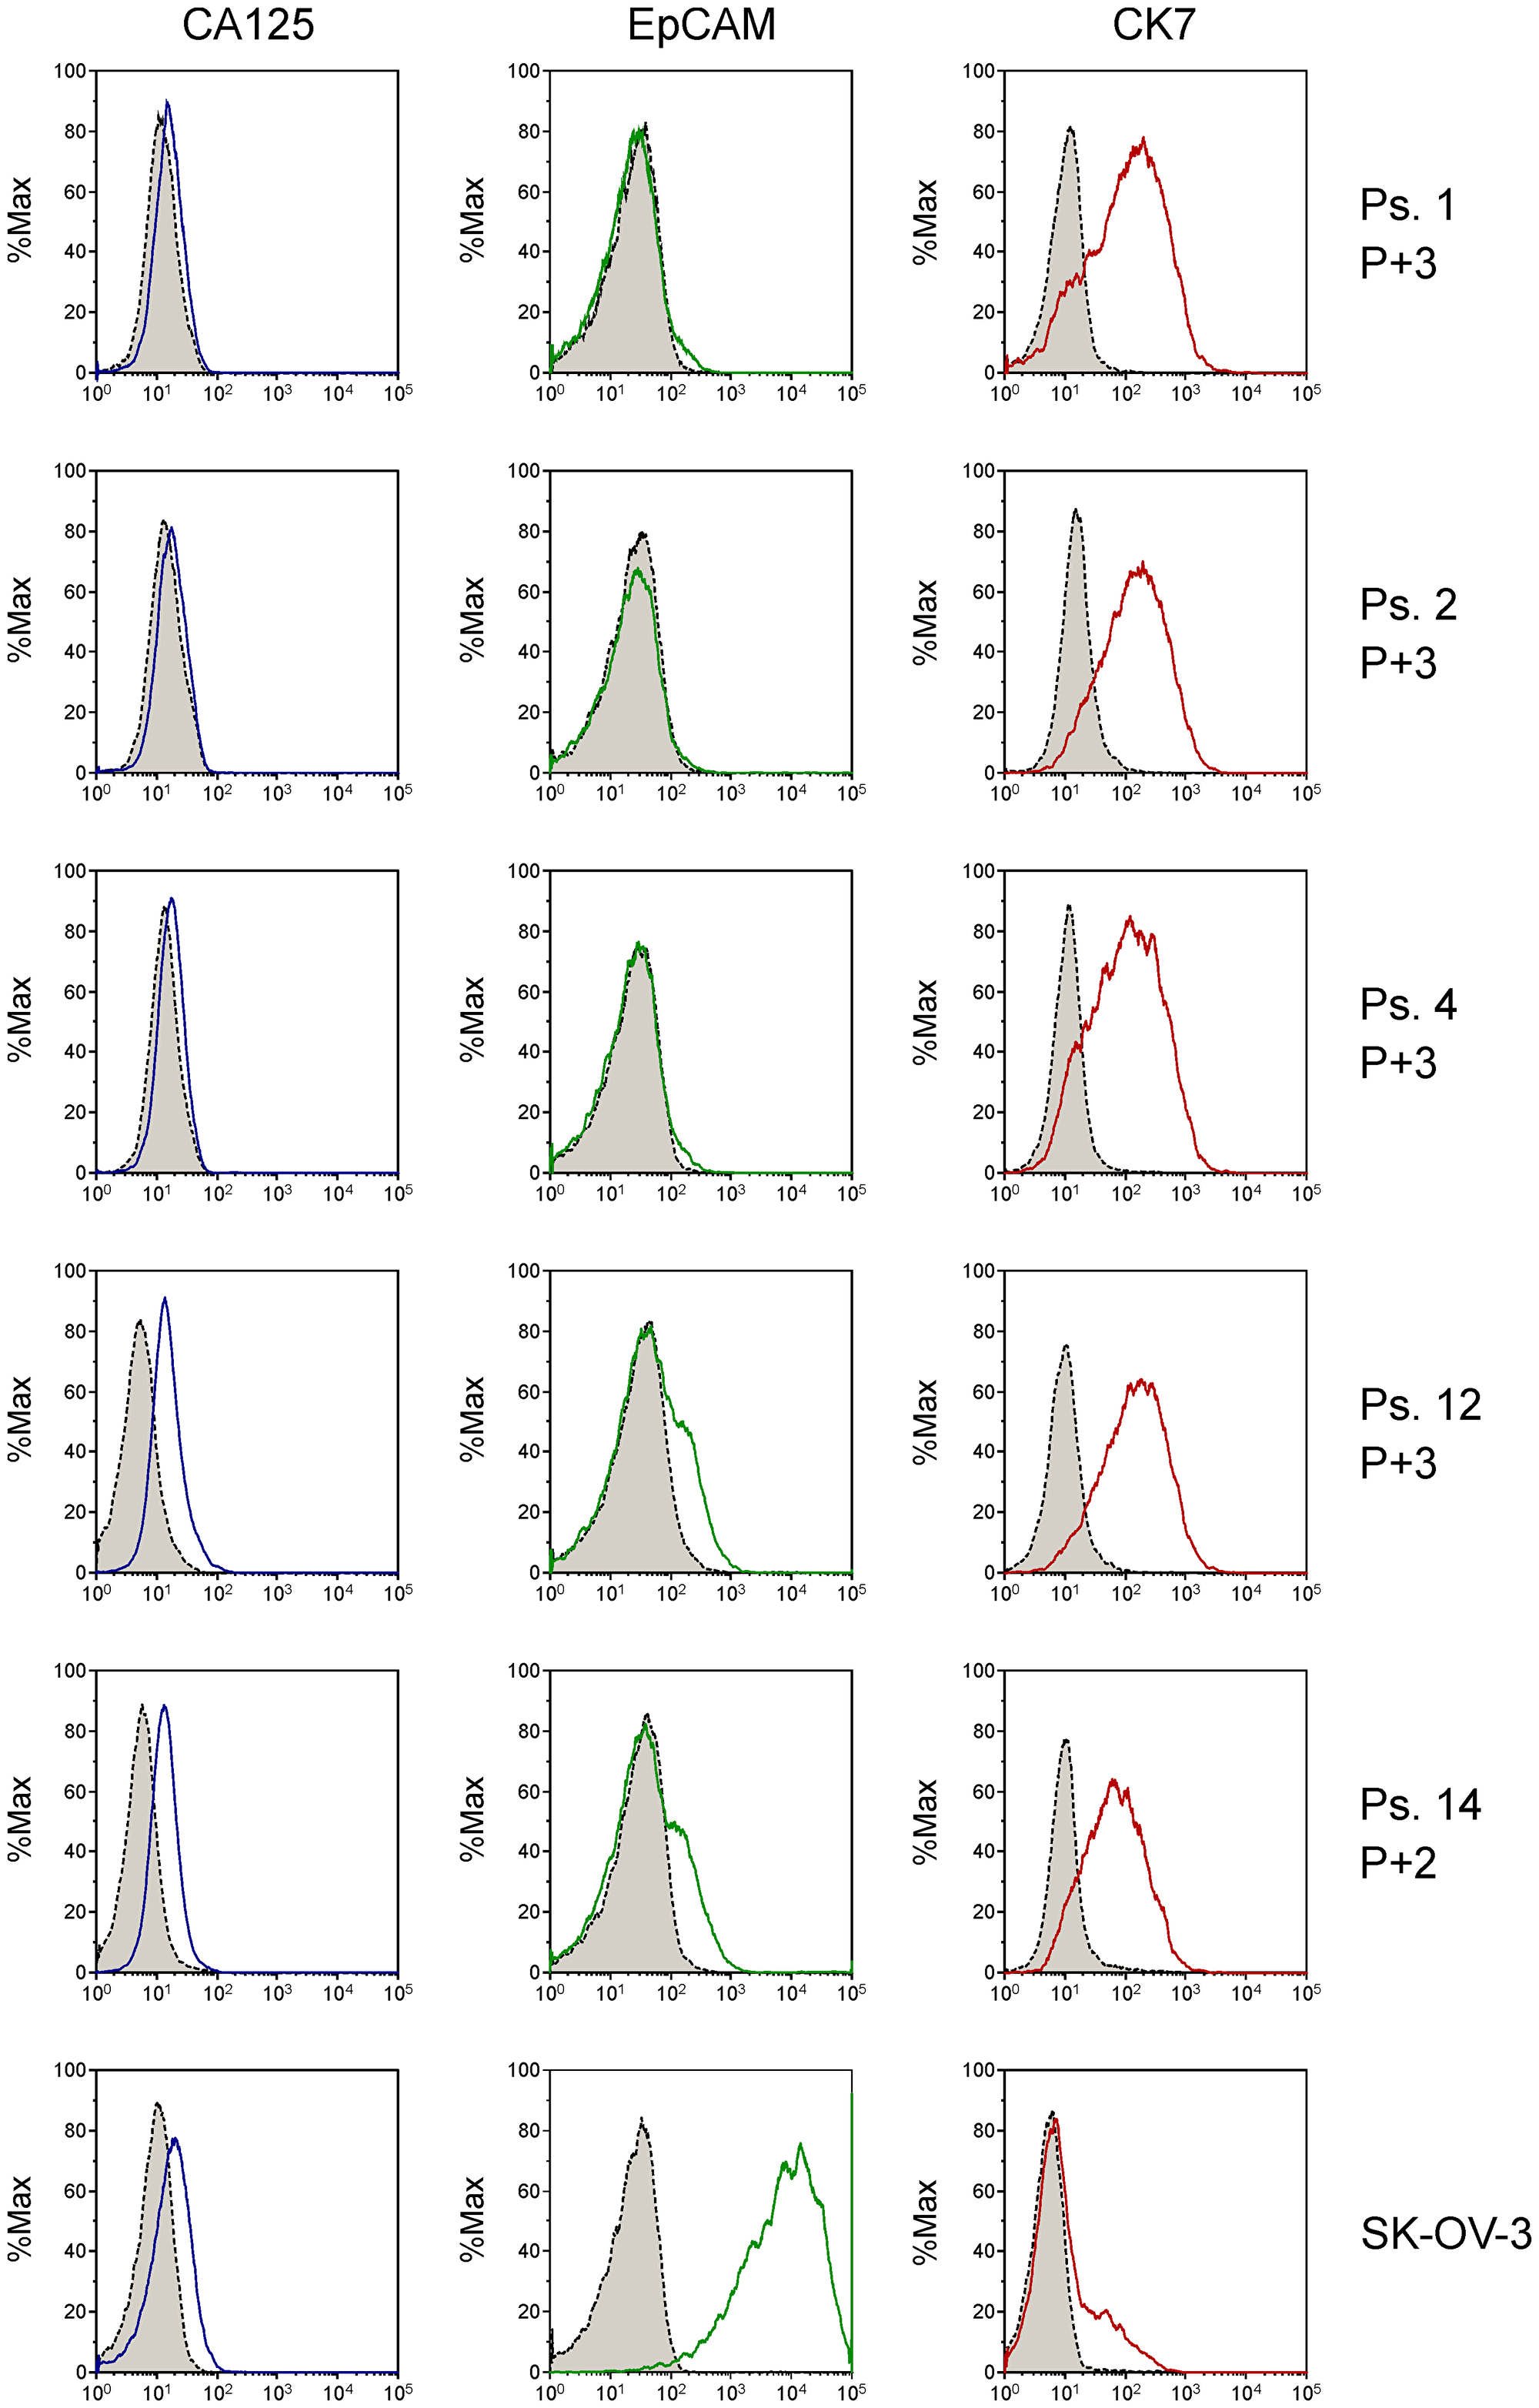 Analysis of tumor cell markers CA125, EpCAM and CK7 on primary patient-derived cell cultures by flow cytometry using fluorescently labeled antibodies.